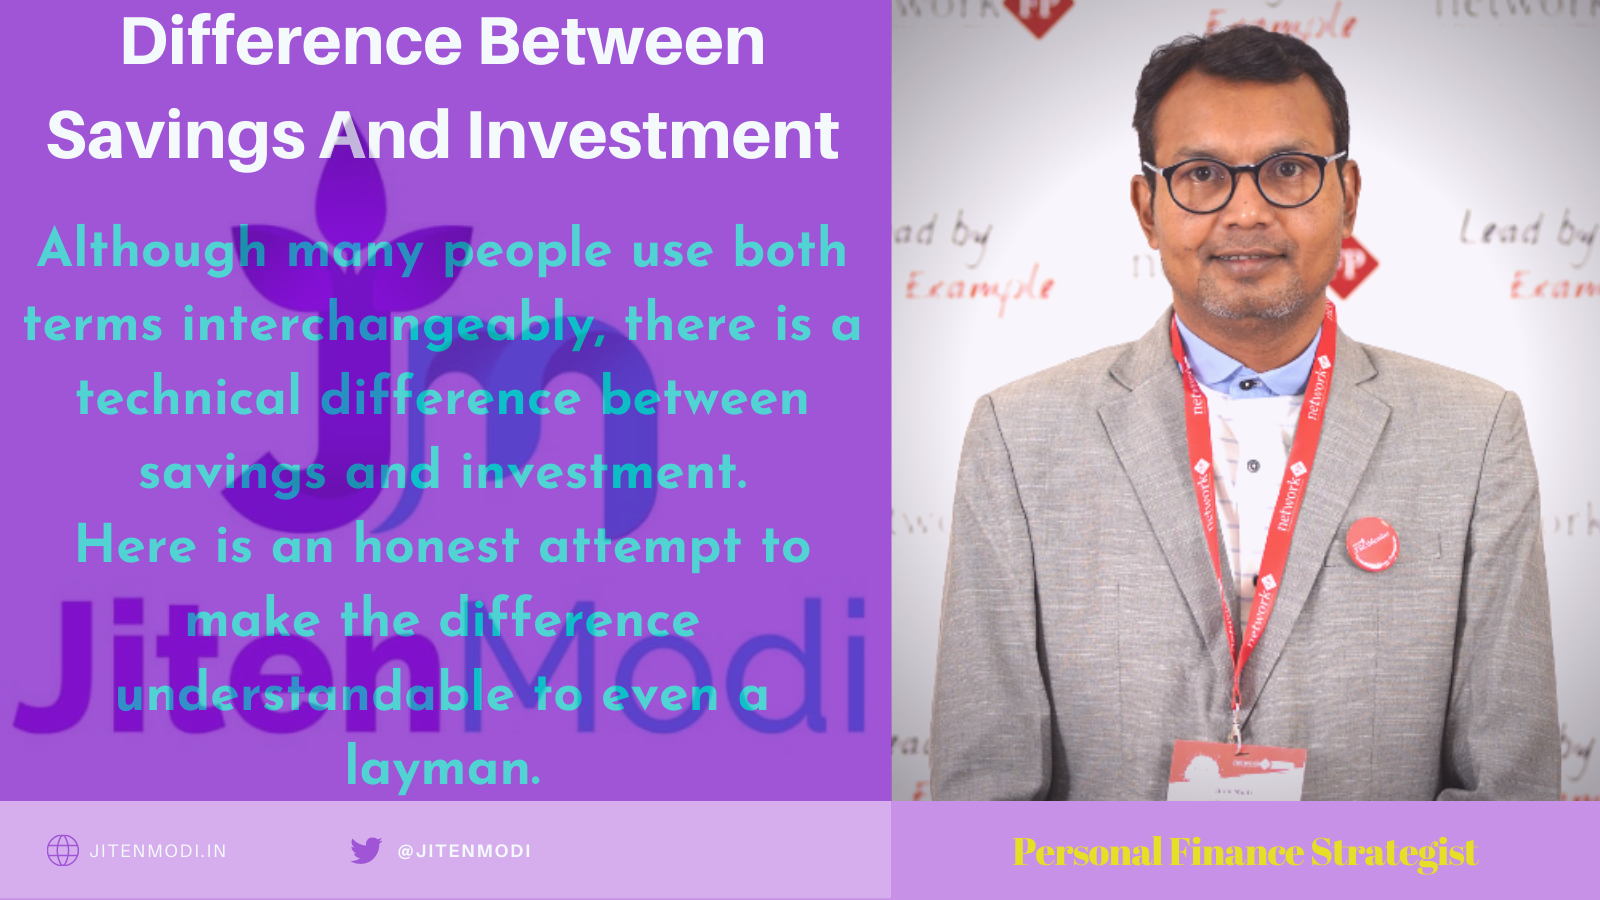 Difference Between Savings And Investment